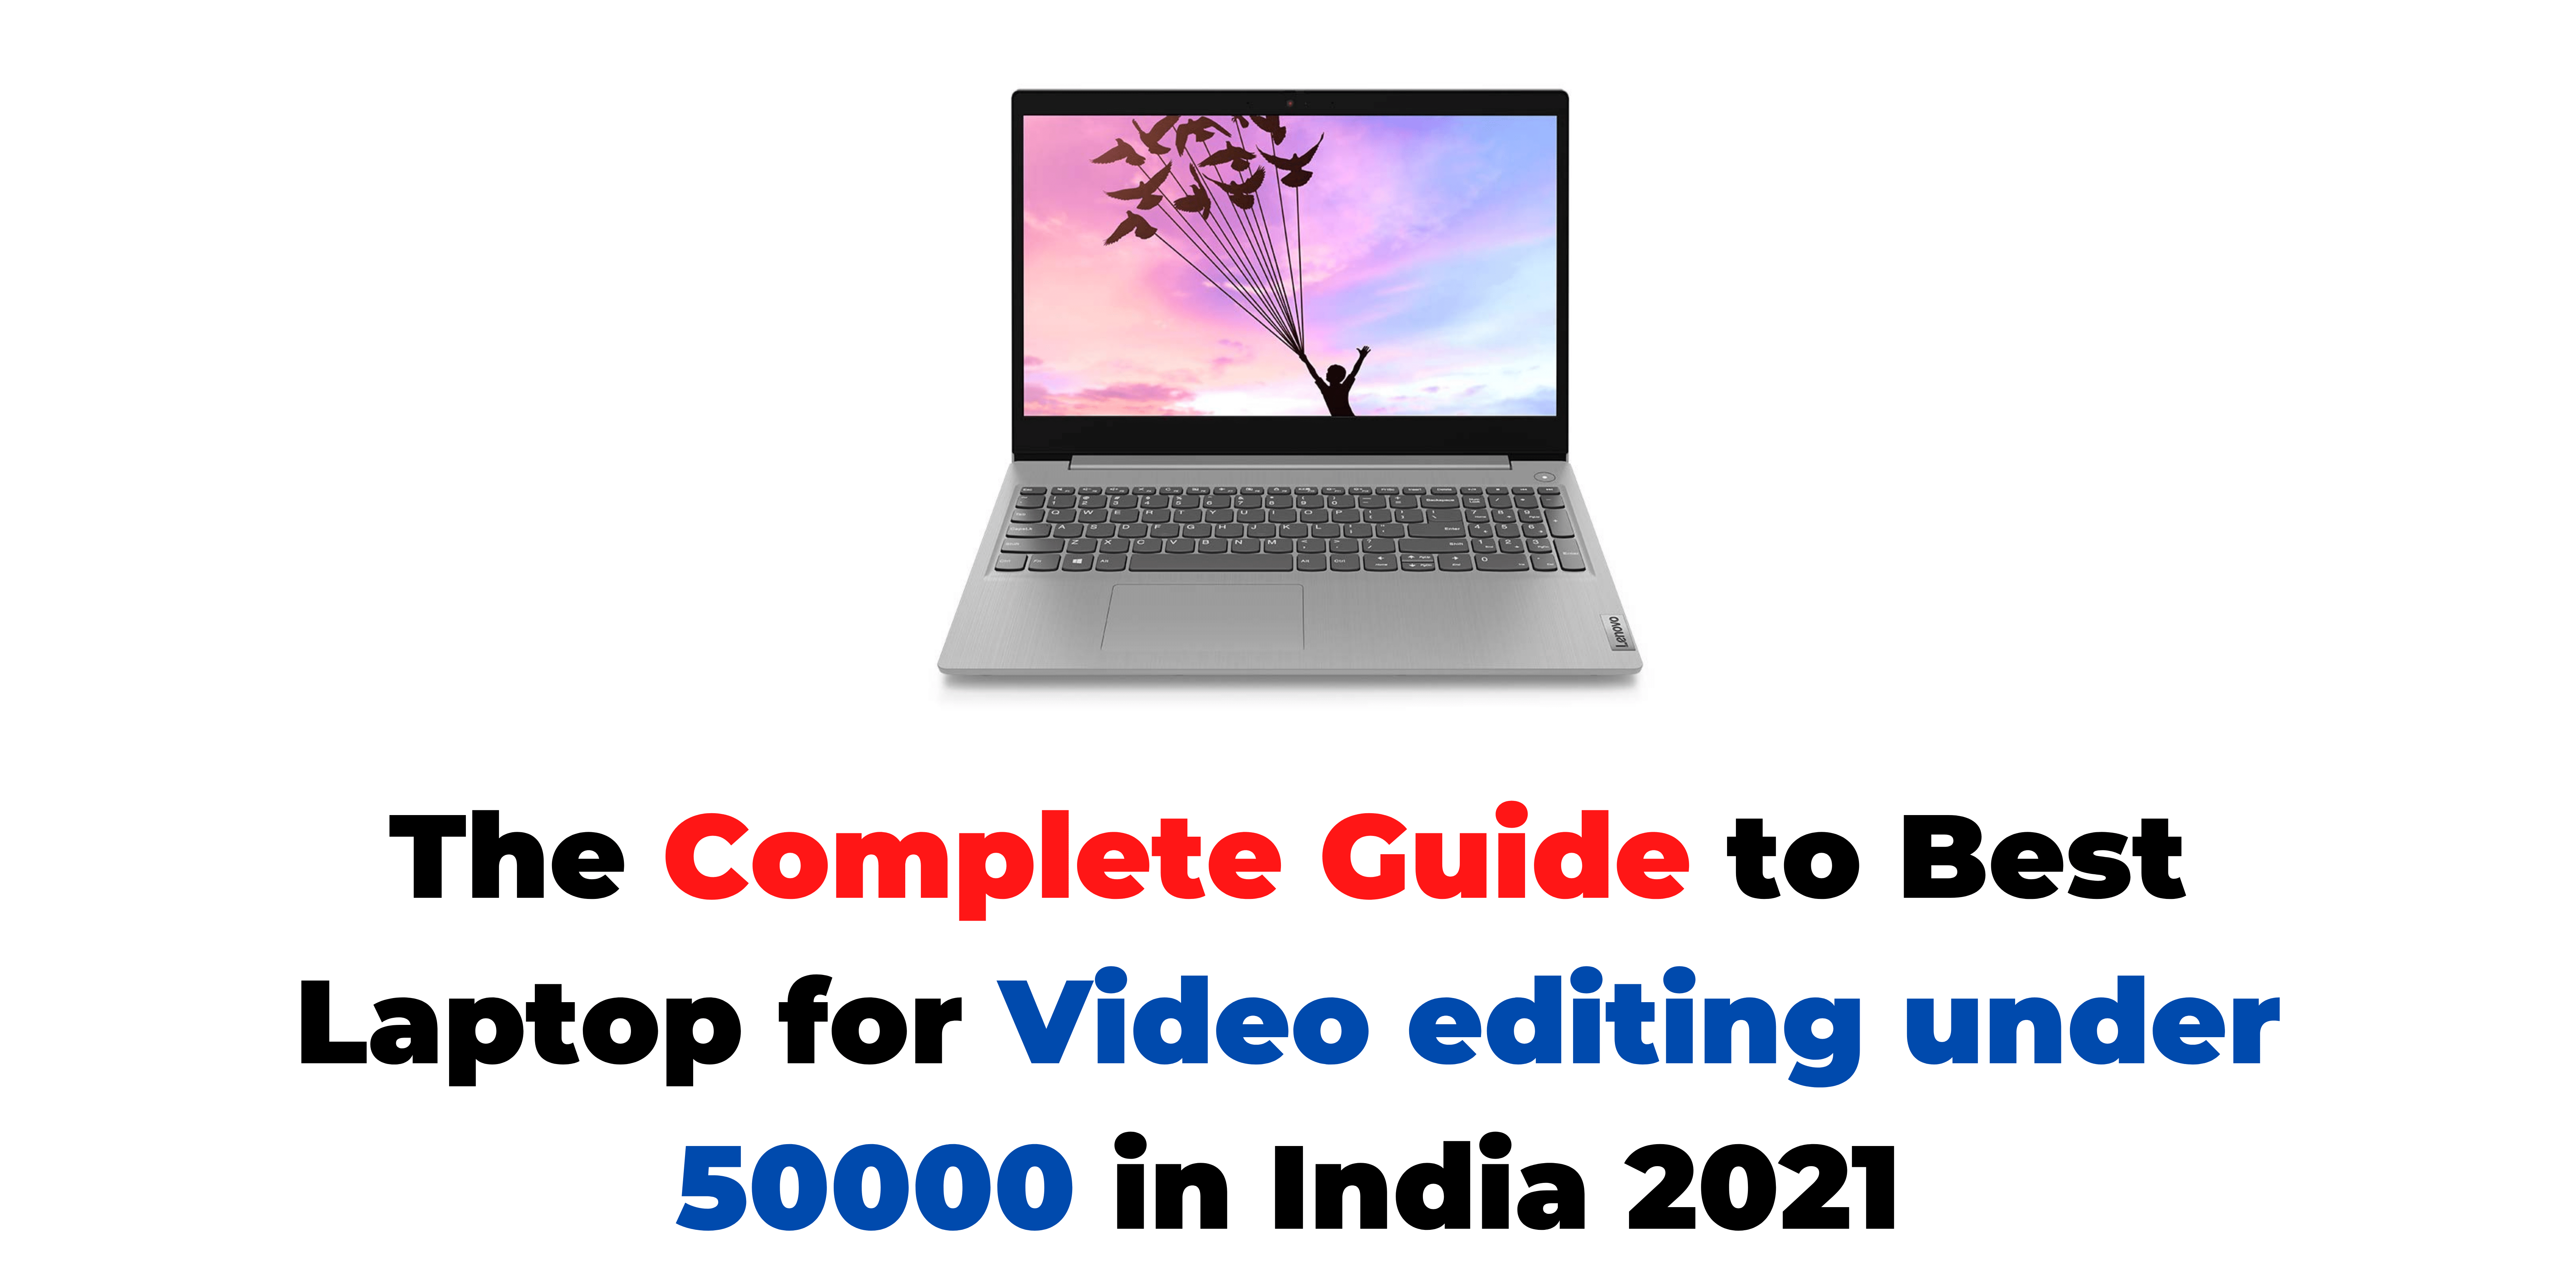 The Complete Guide to Best Laptop for Video editing under 50000 in India 2021